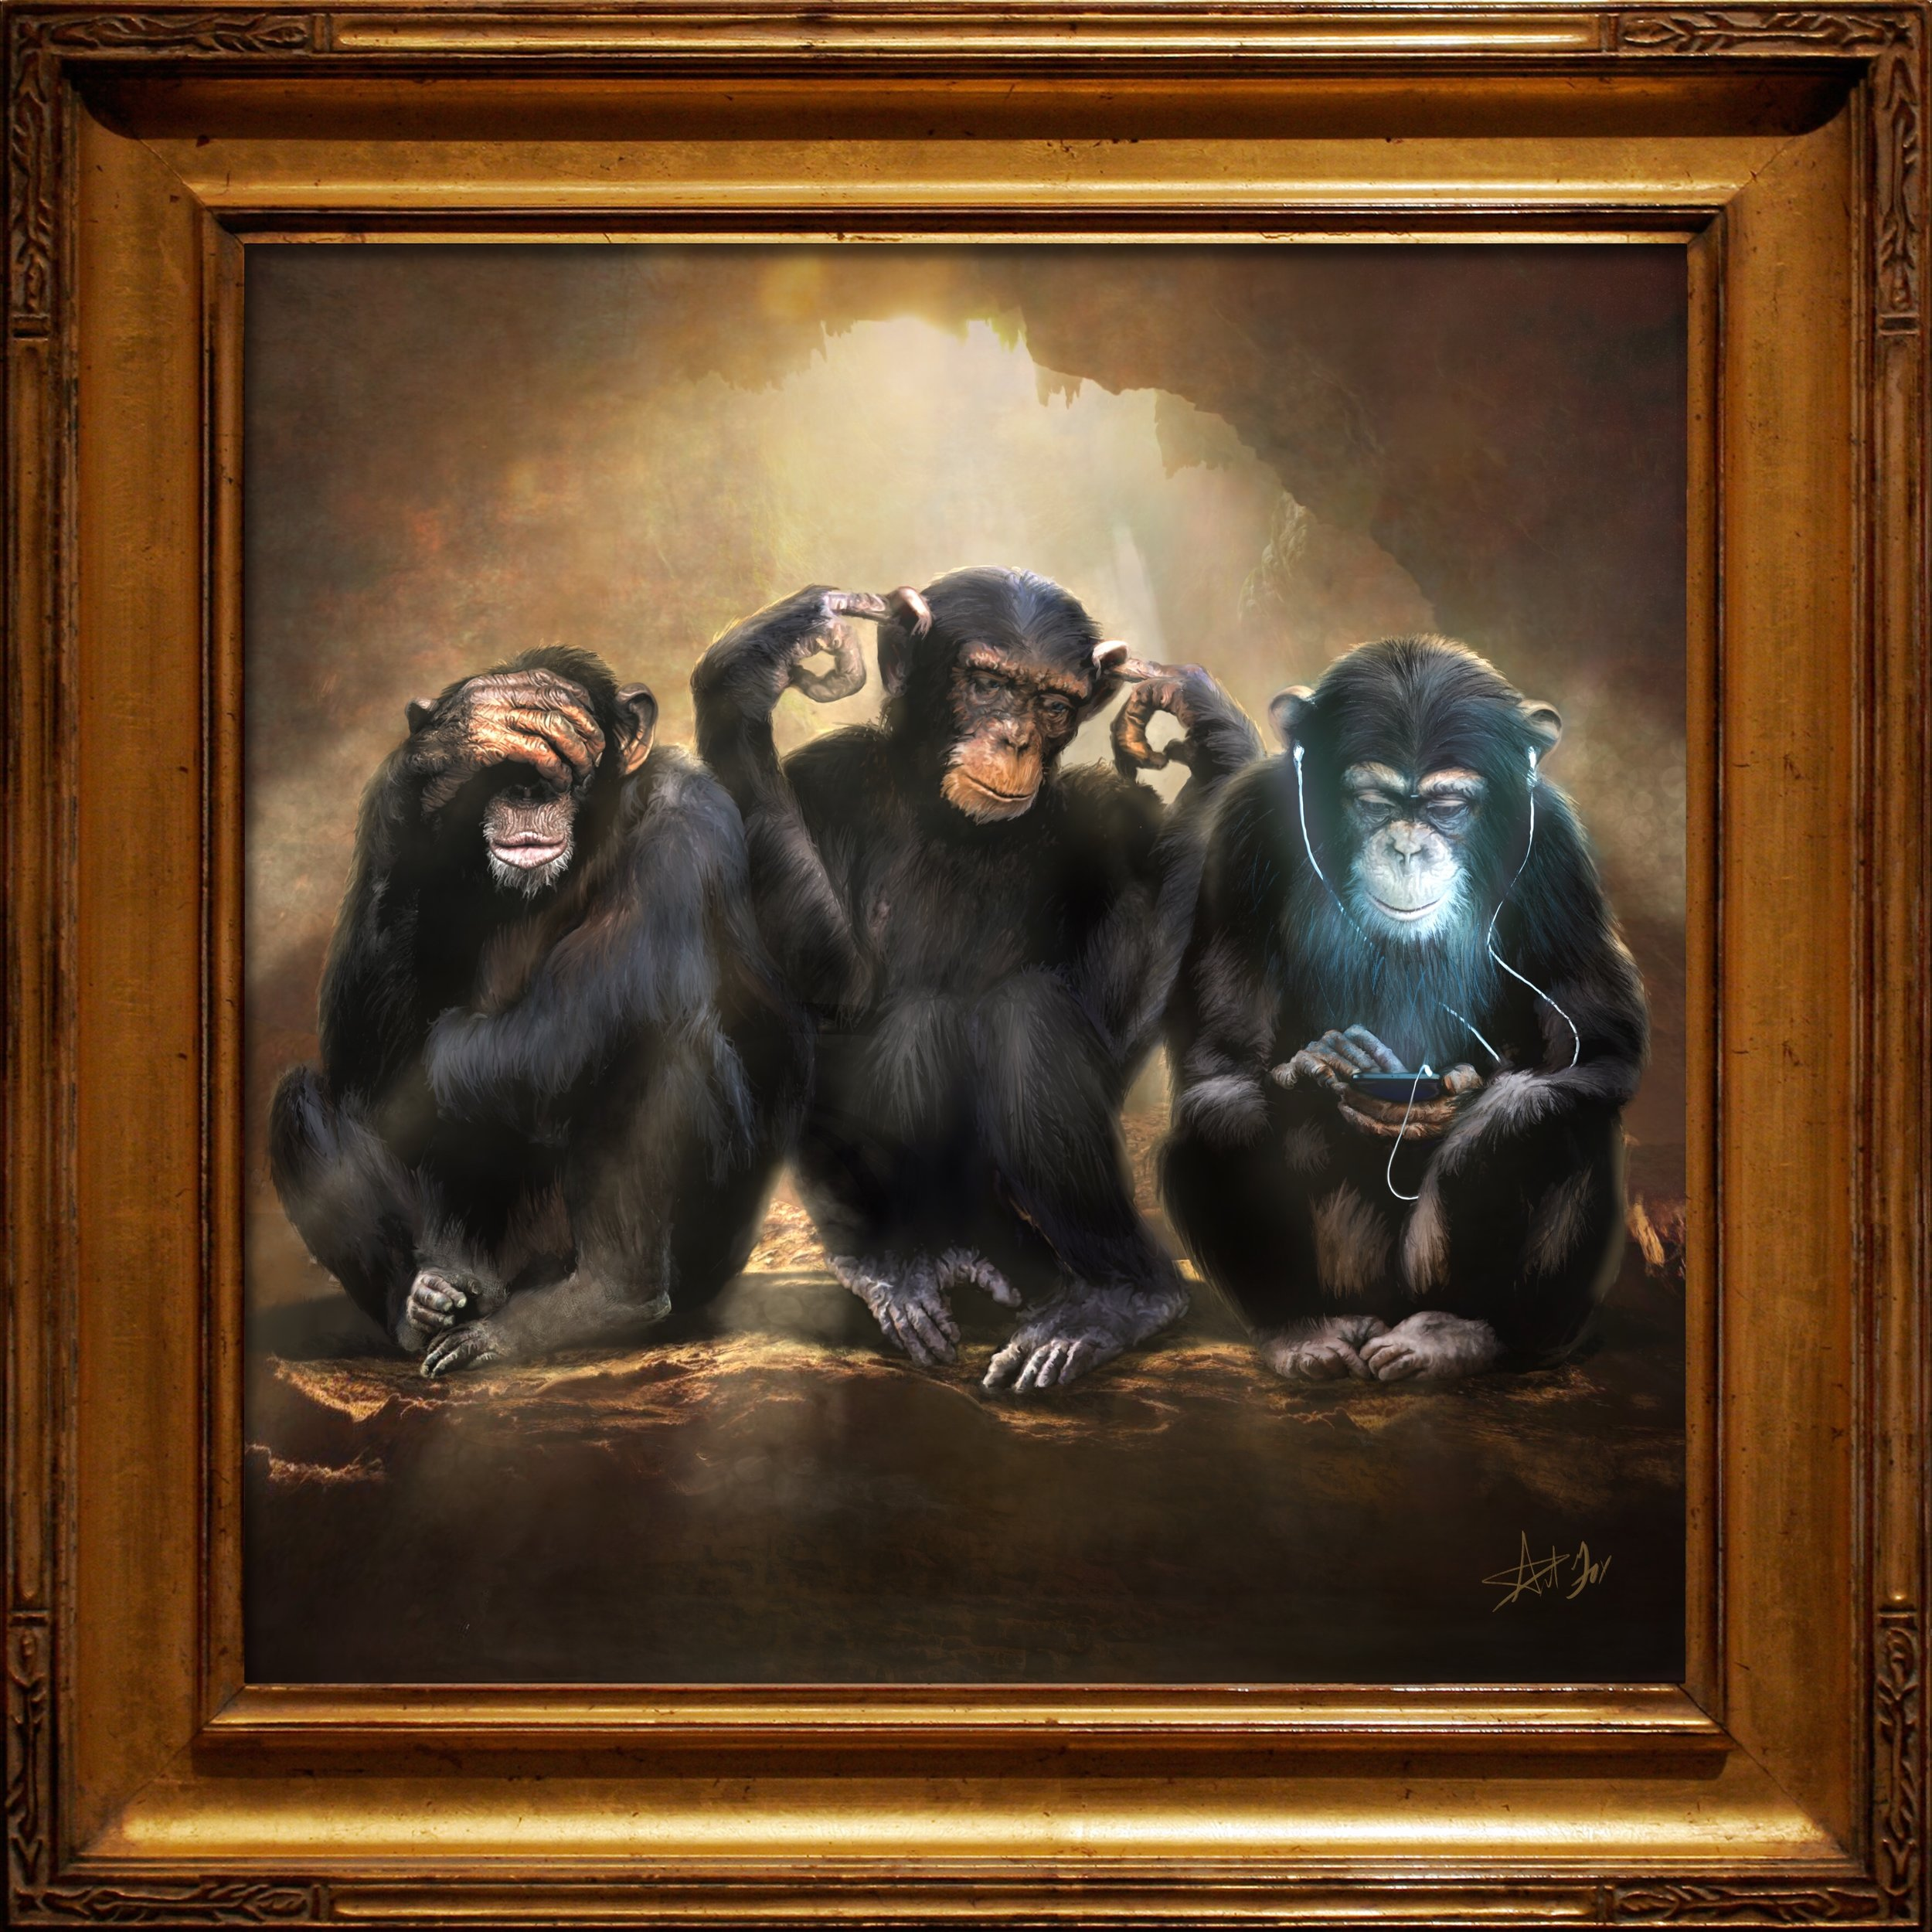 3 wise monkeys framed (1).jpg